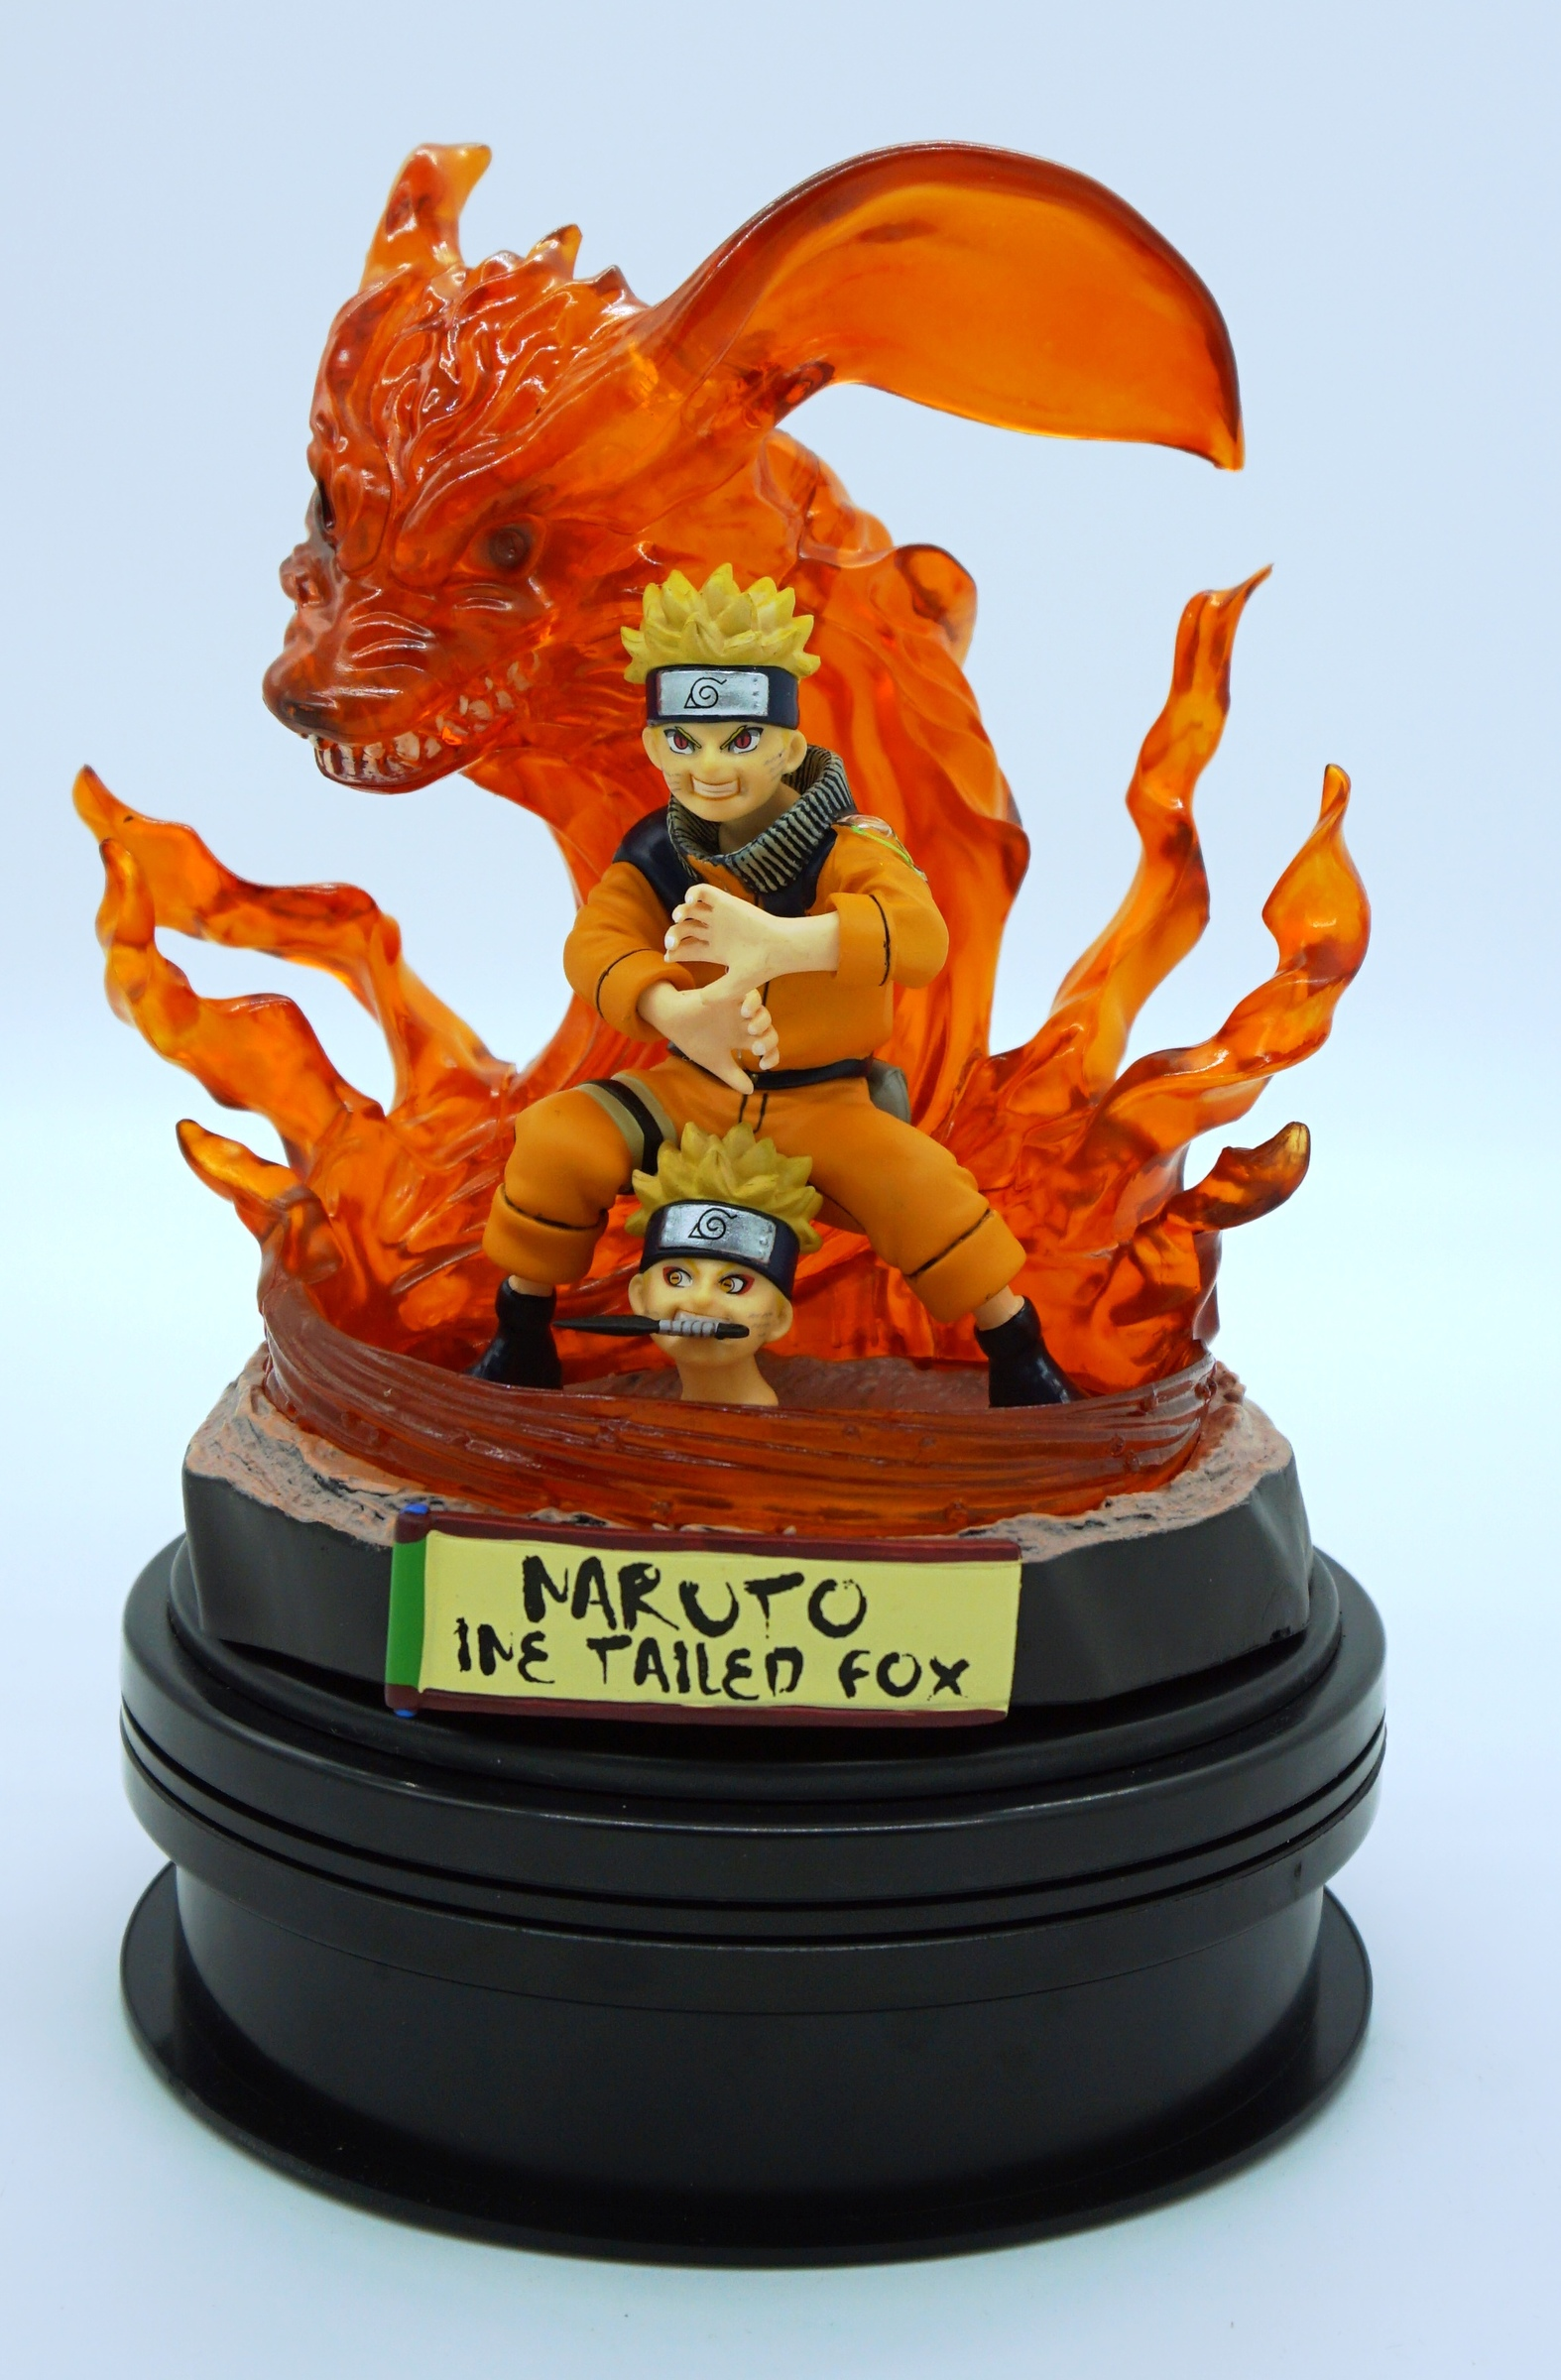 Naruto in tailed fox(505101).JPG